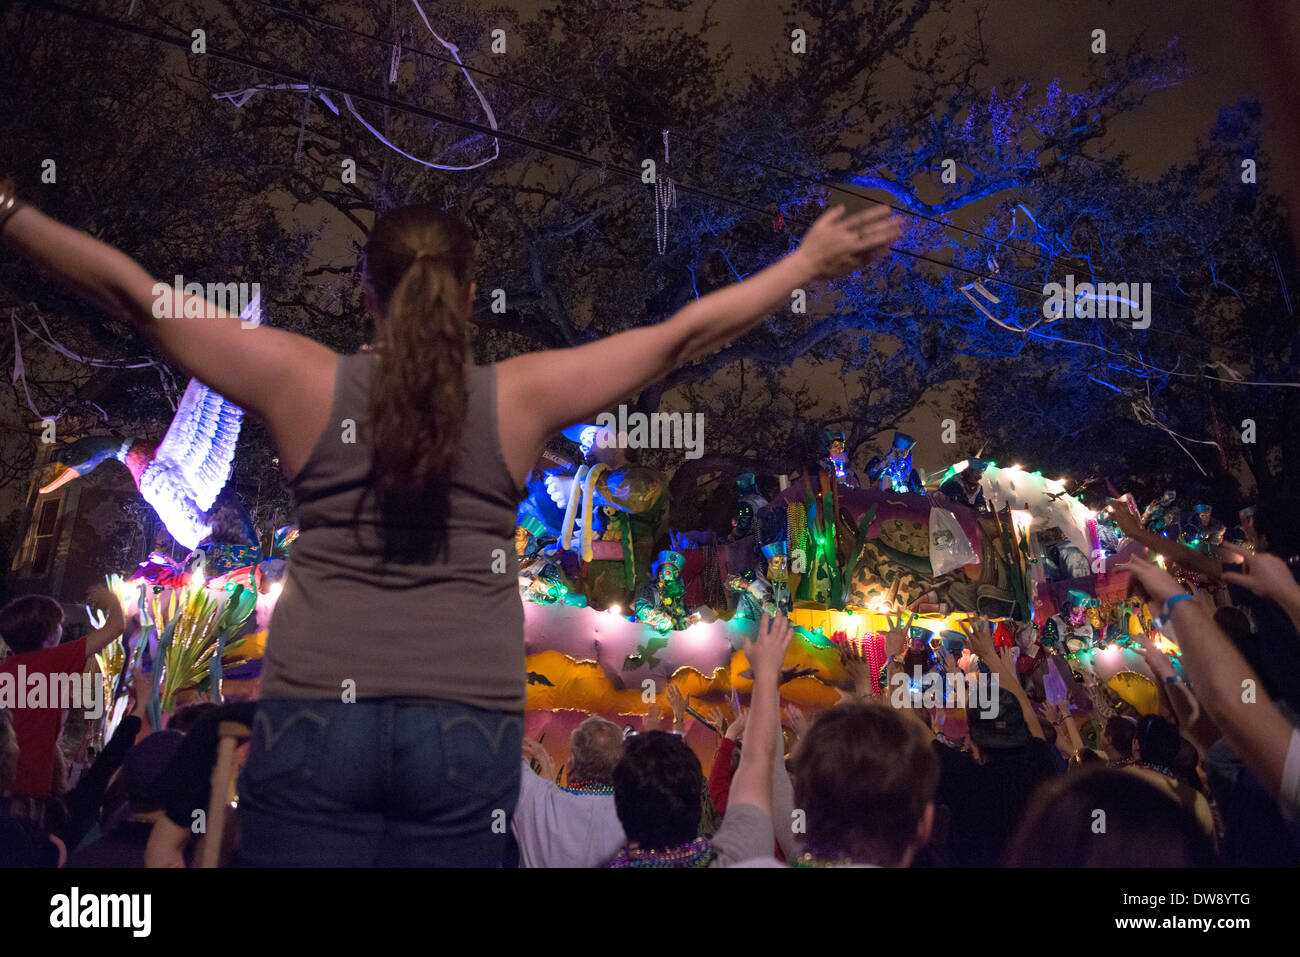 New Orleans, Louisiana, 2 March, 2014. Crowds flood  St. Charles Street to watch the Krewe of Bacchus parade, this Stock Photo